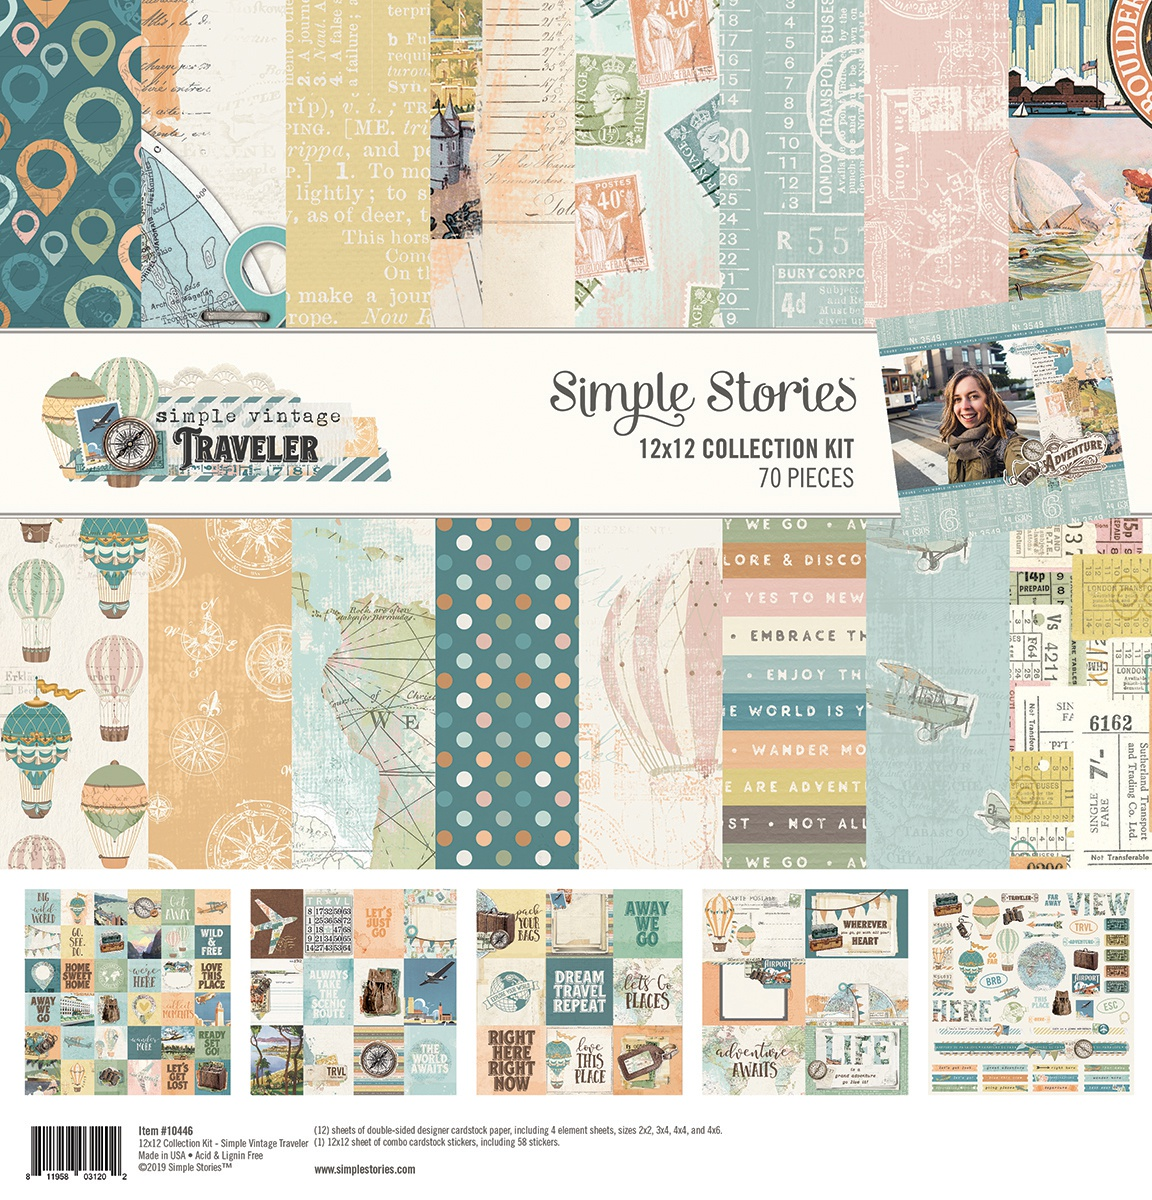 Simple Stories - Simple Vintage Traveler 12x12 Collection Kit